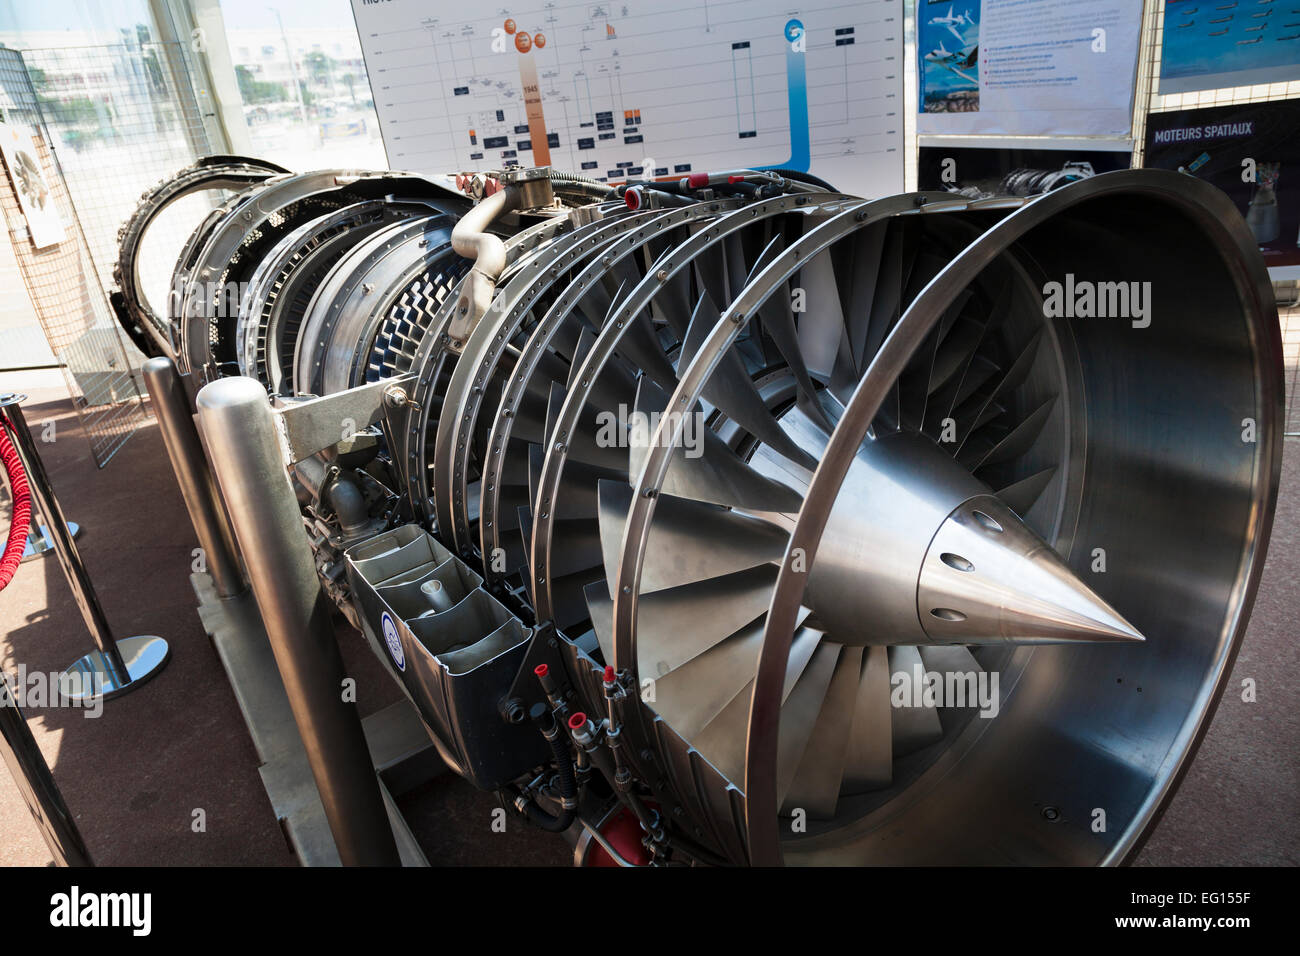 Display section of  SNECMA M53 afterburning turbofan engine developed for the Dassault Mirage 2000 fighter - Stock Image